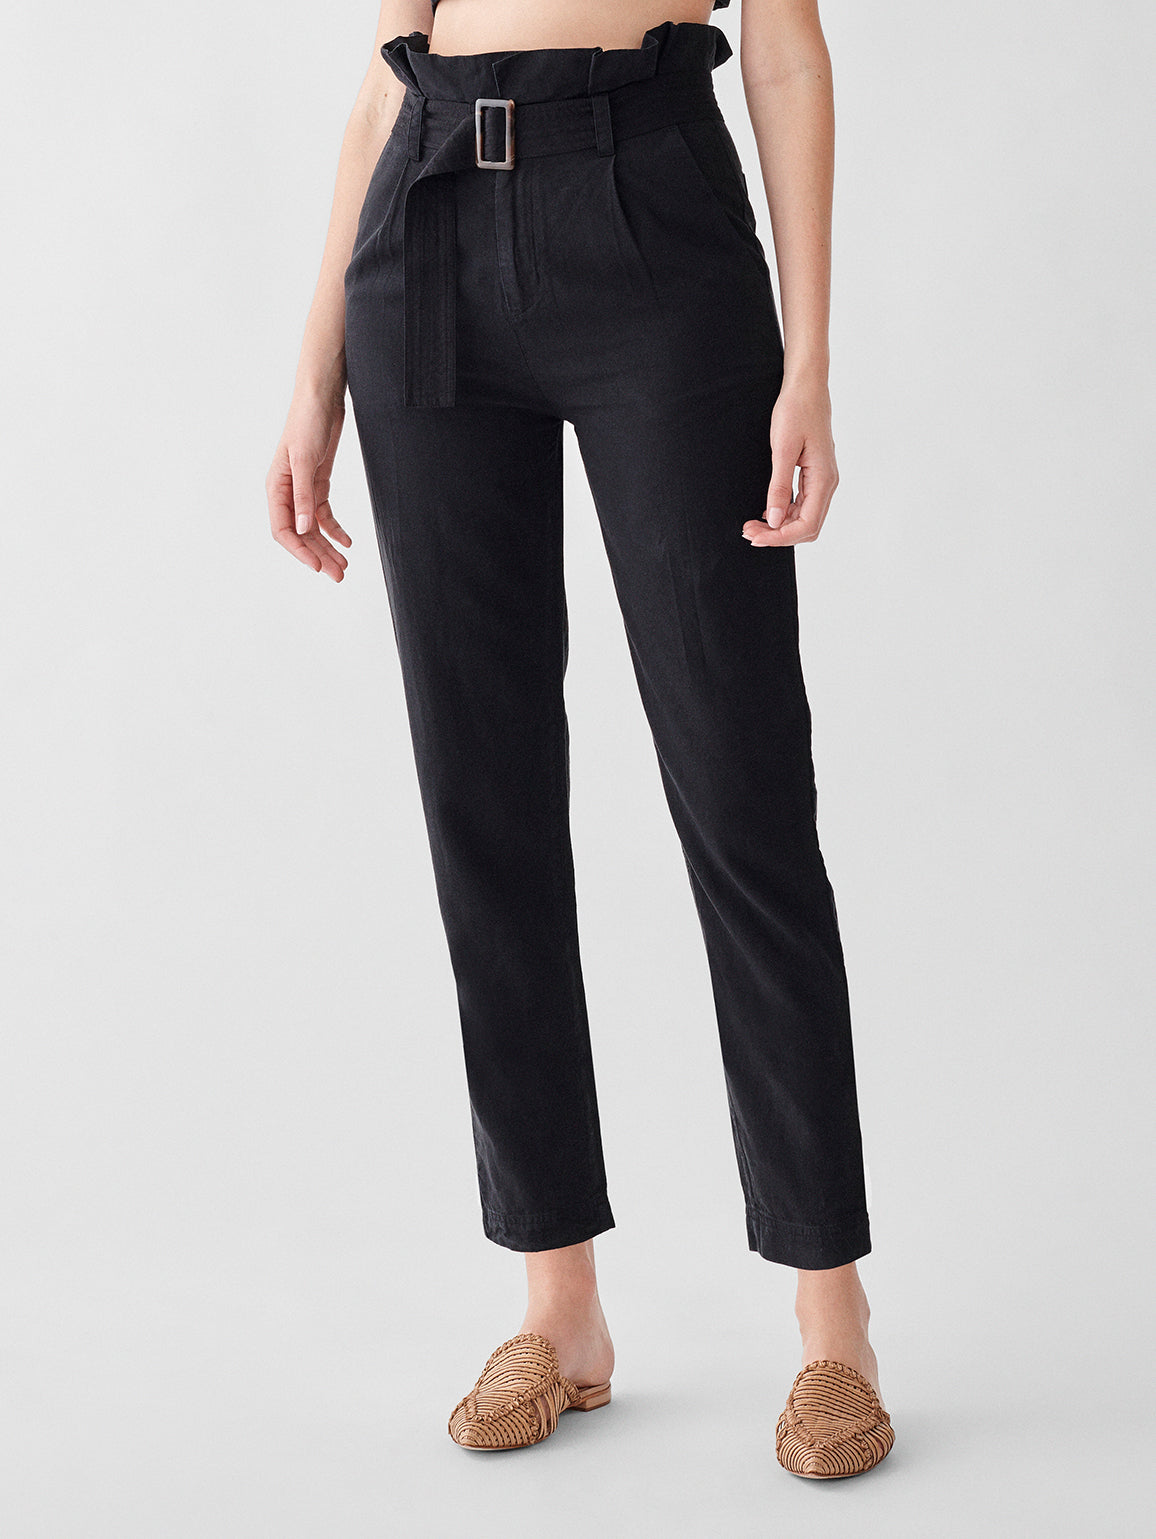 Darcie Pants | Black